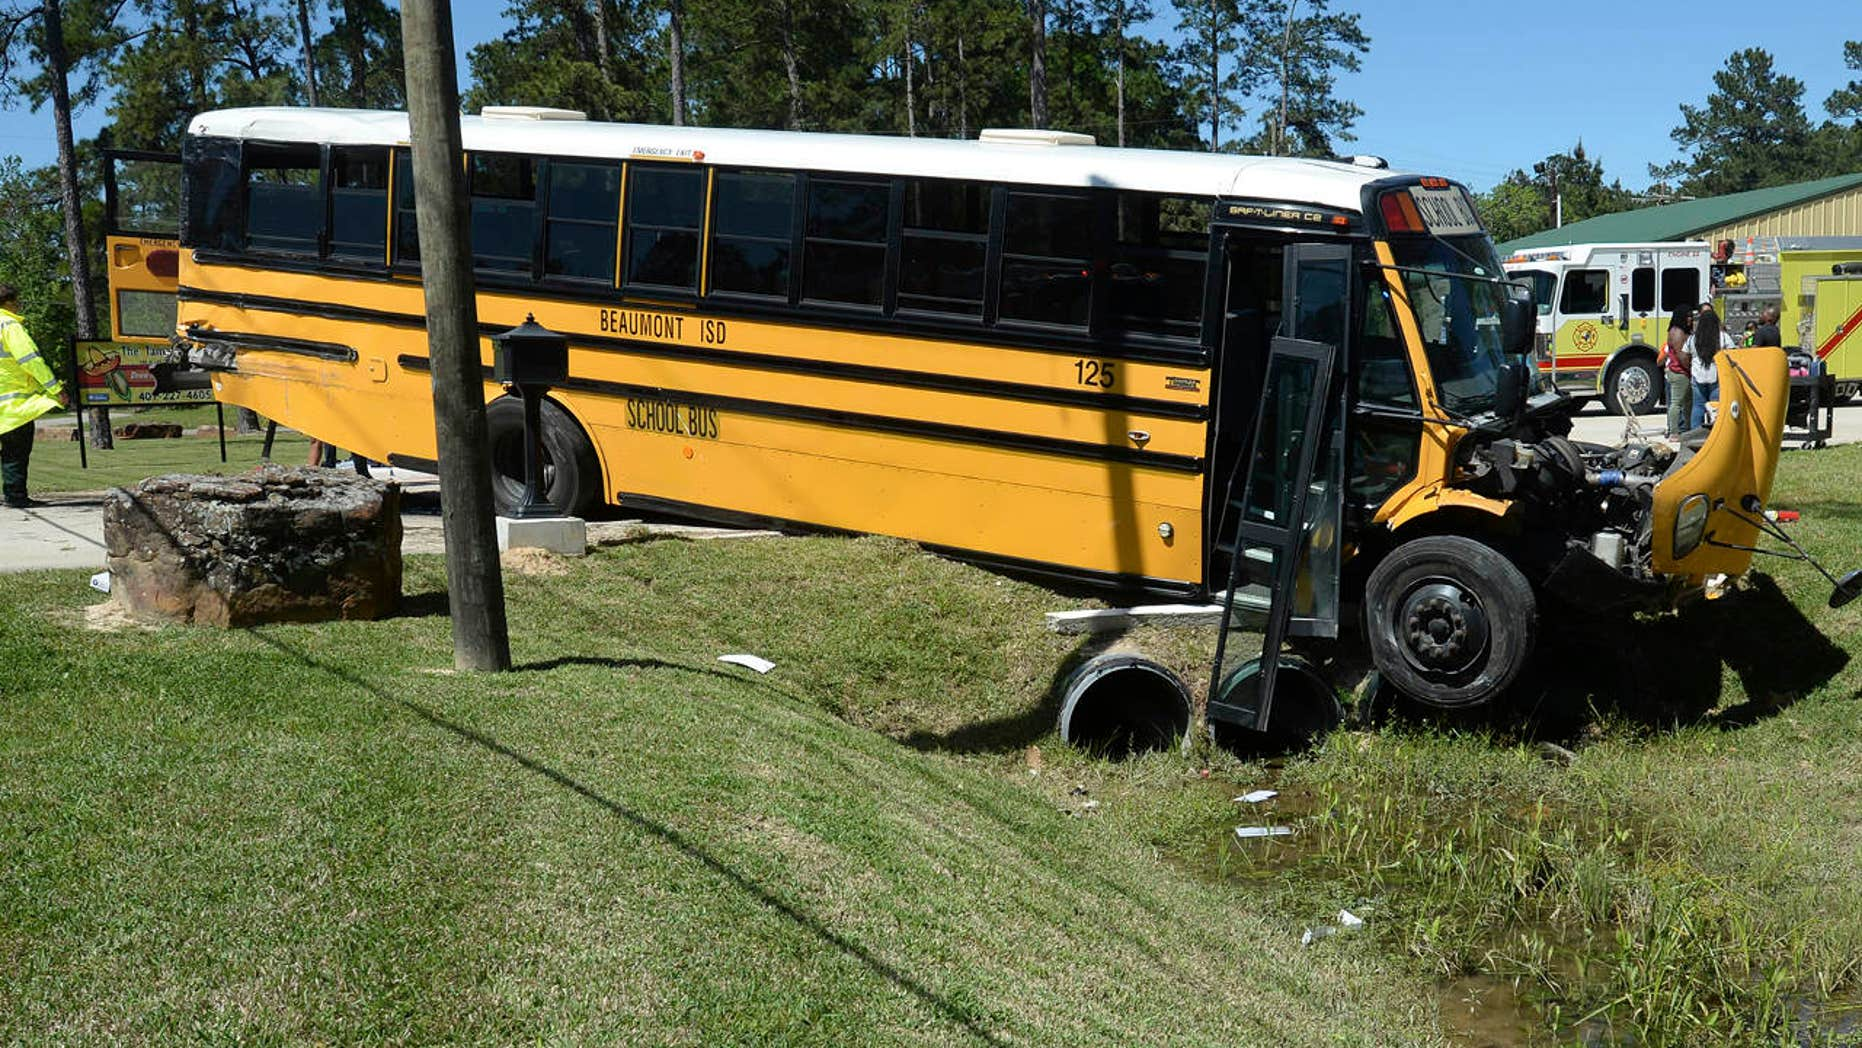 April 5, 2017: More than 20 Charlton-Pollard Elementary students and one adult were hospitalized when a Beaumont school district bus was involved in a traffic accident on U.S. 69 in Lumberton, Texas.